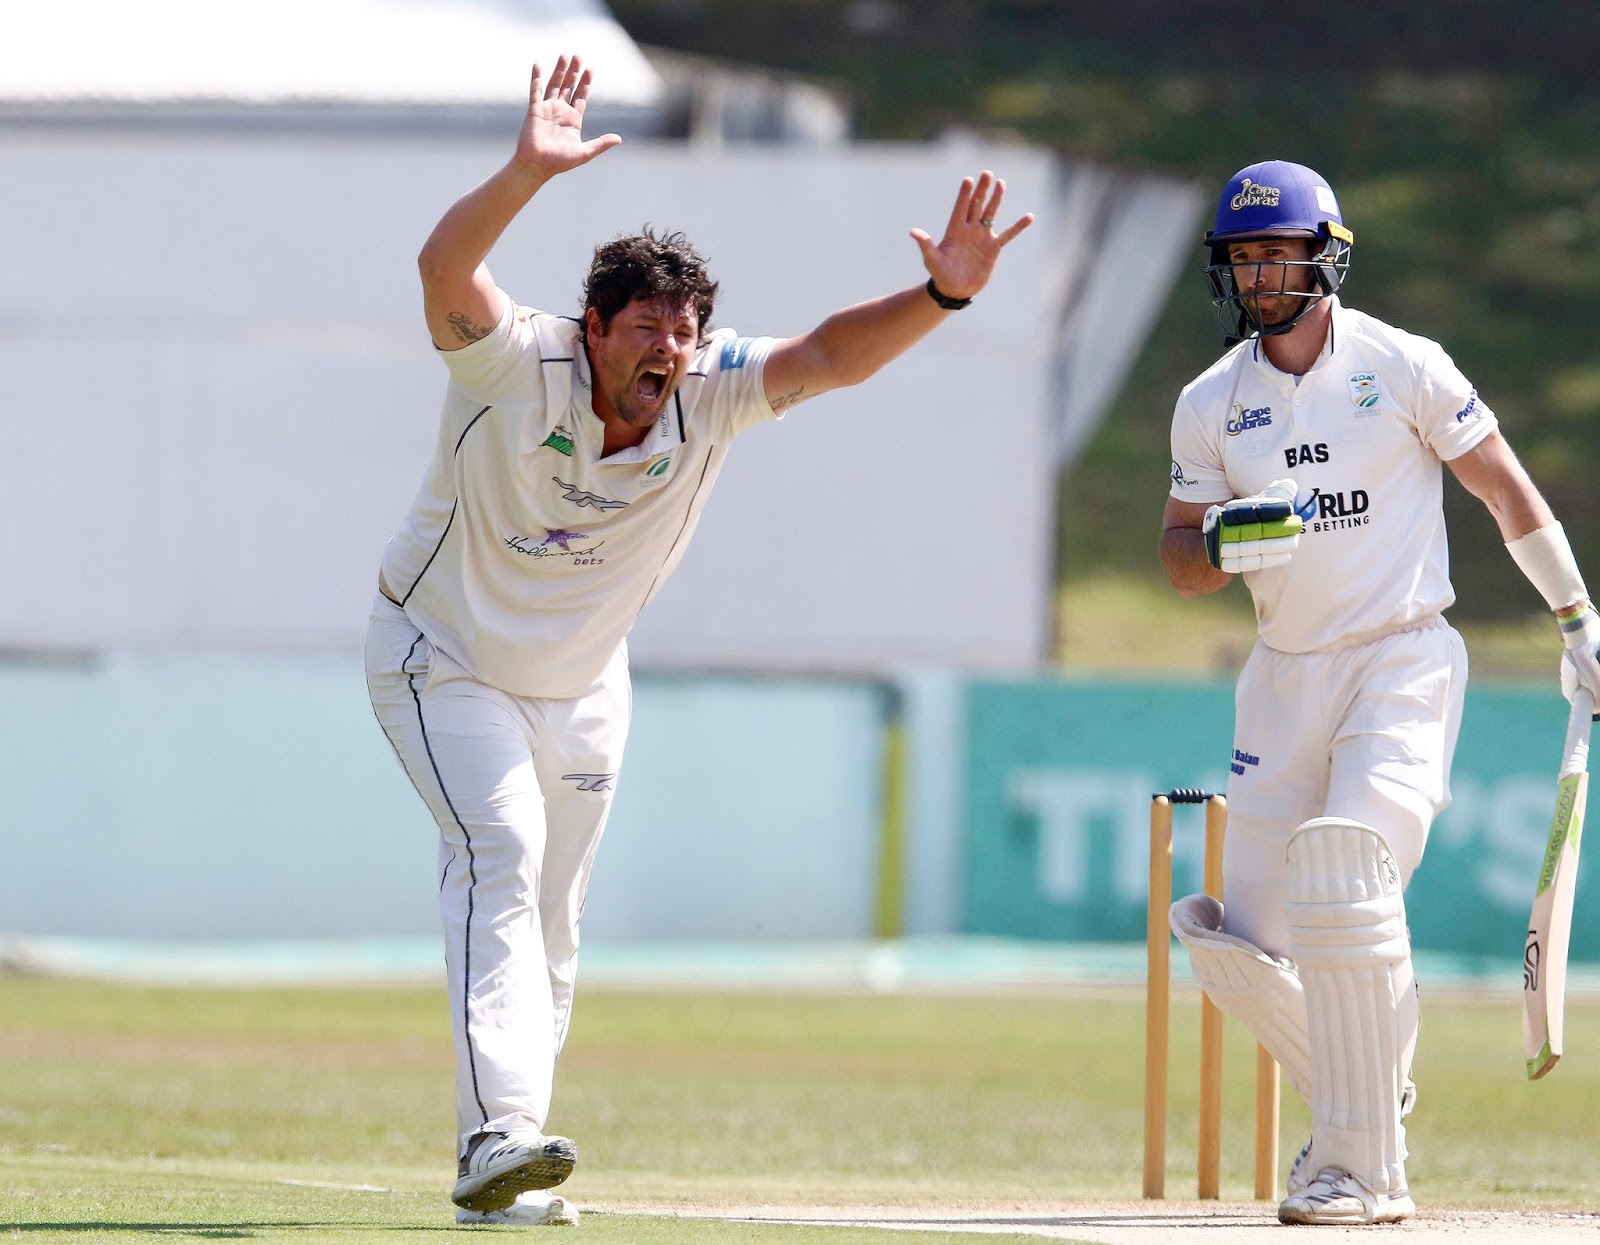 Rob Frylinck appeals successfully for the wicket of World Sports Betting Cape Cobras captain Pieter Malan on day three of their CSA 4-Day Domestic Series match at the Pietermaritzburg Oval on Wednesday.